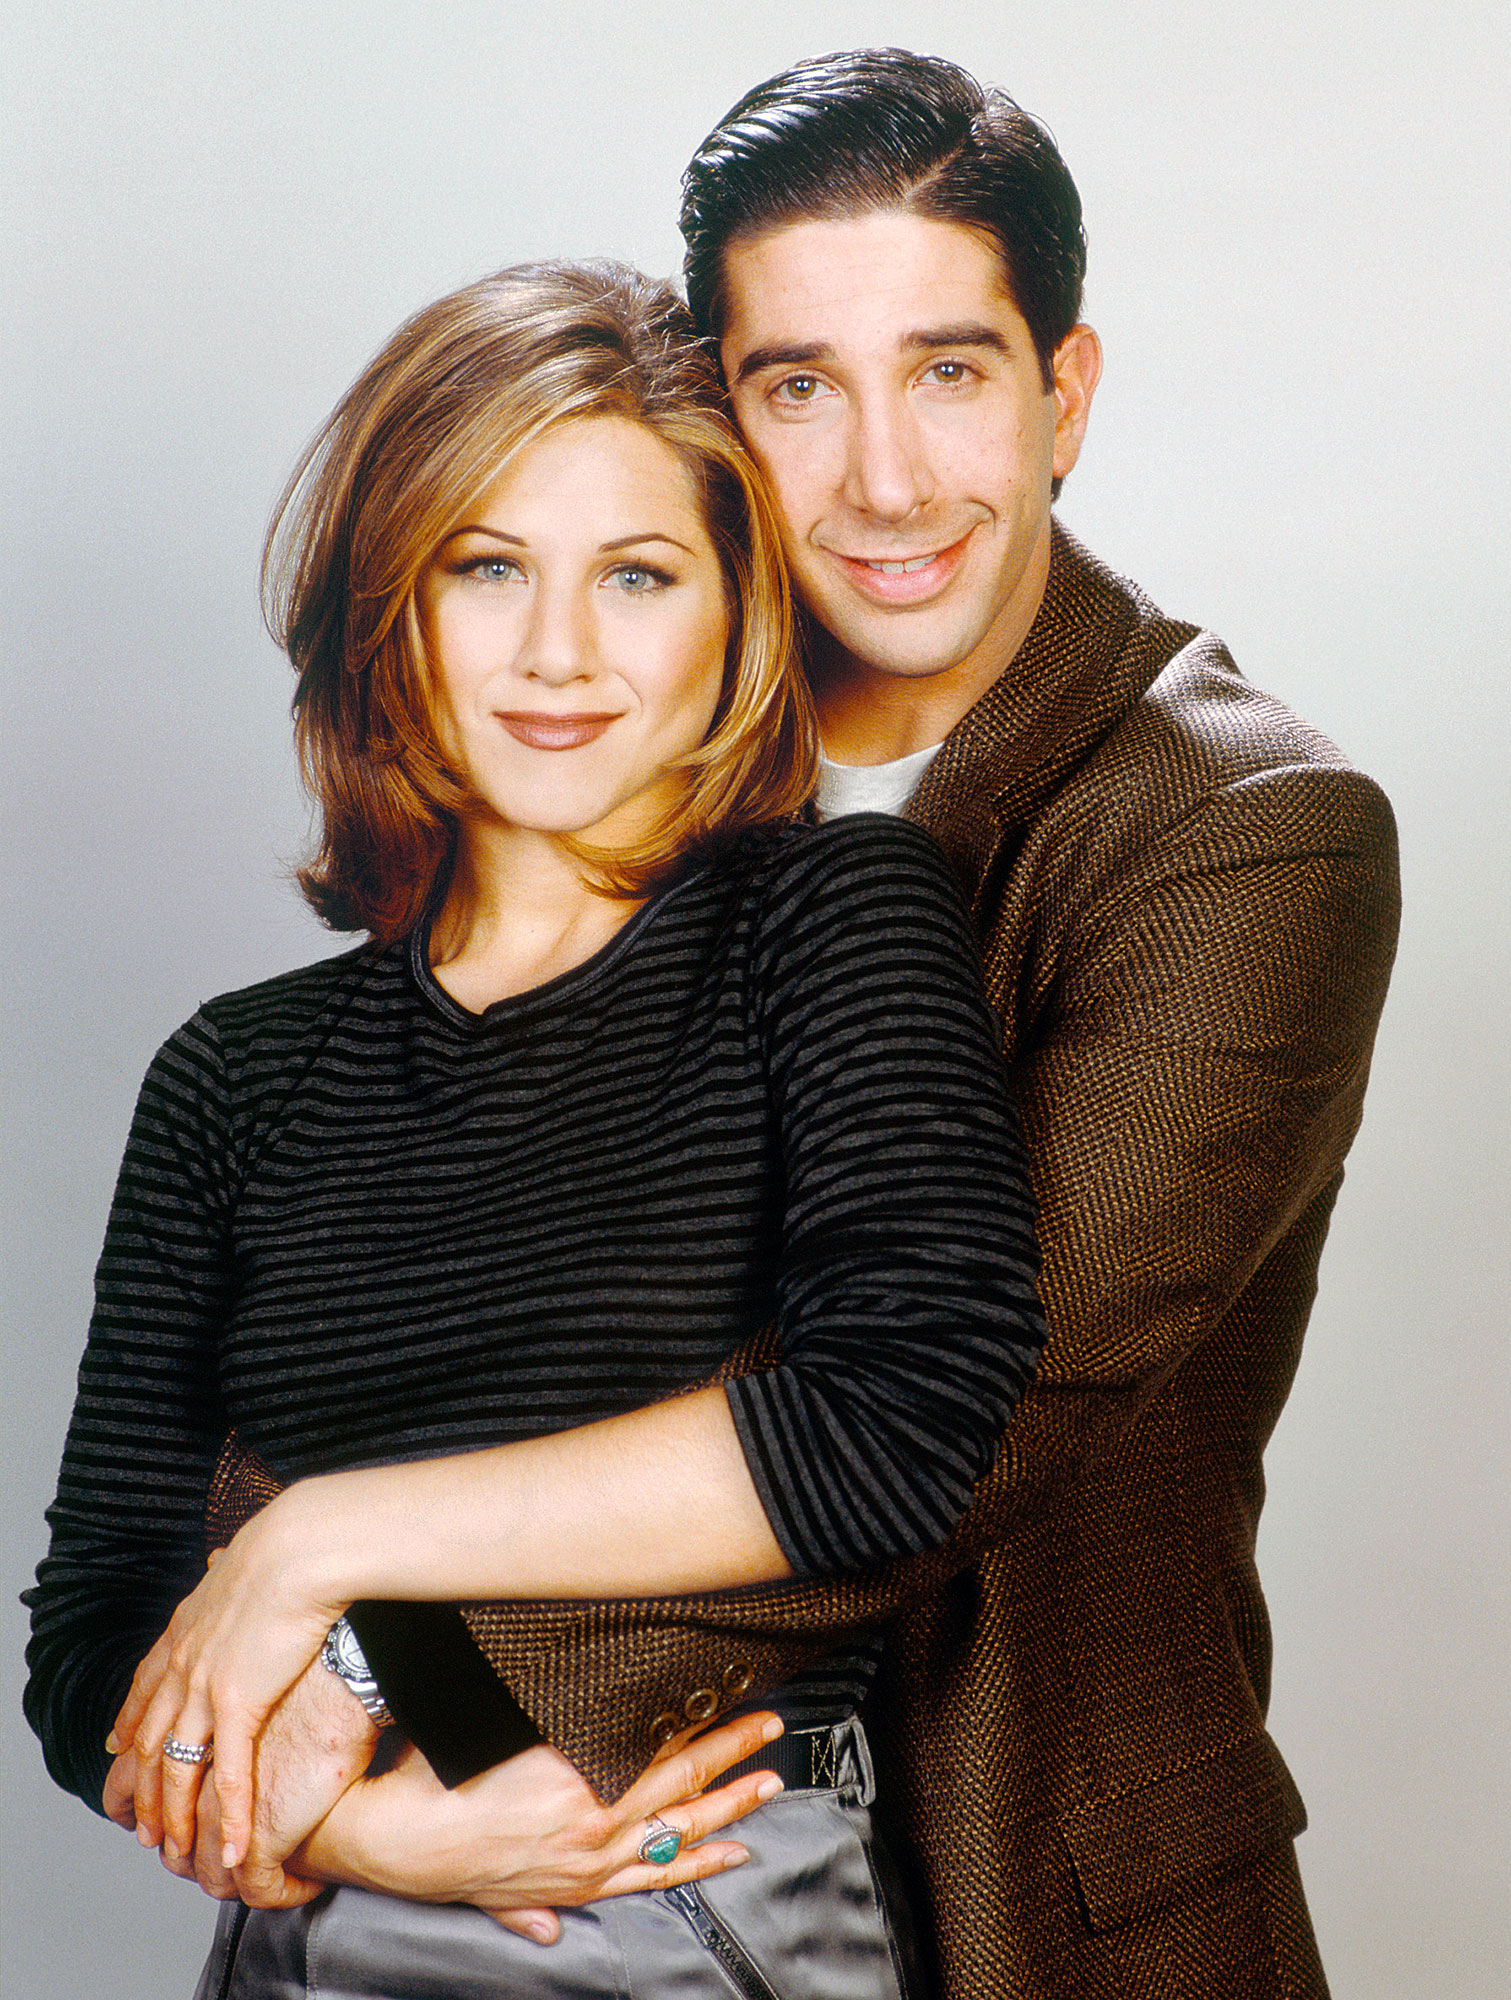 Best TV Couples Friends Jennifer Aniston David Schwimmer - Show: Friends Actors: Jennifer Aniston and David Schwimmer Network: NBC Seasons: 10